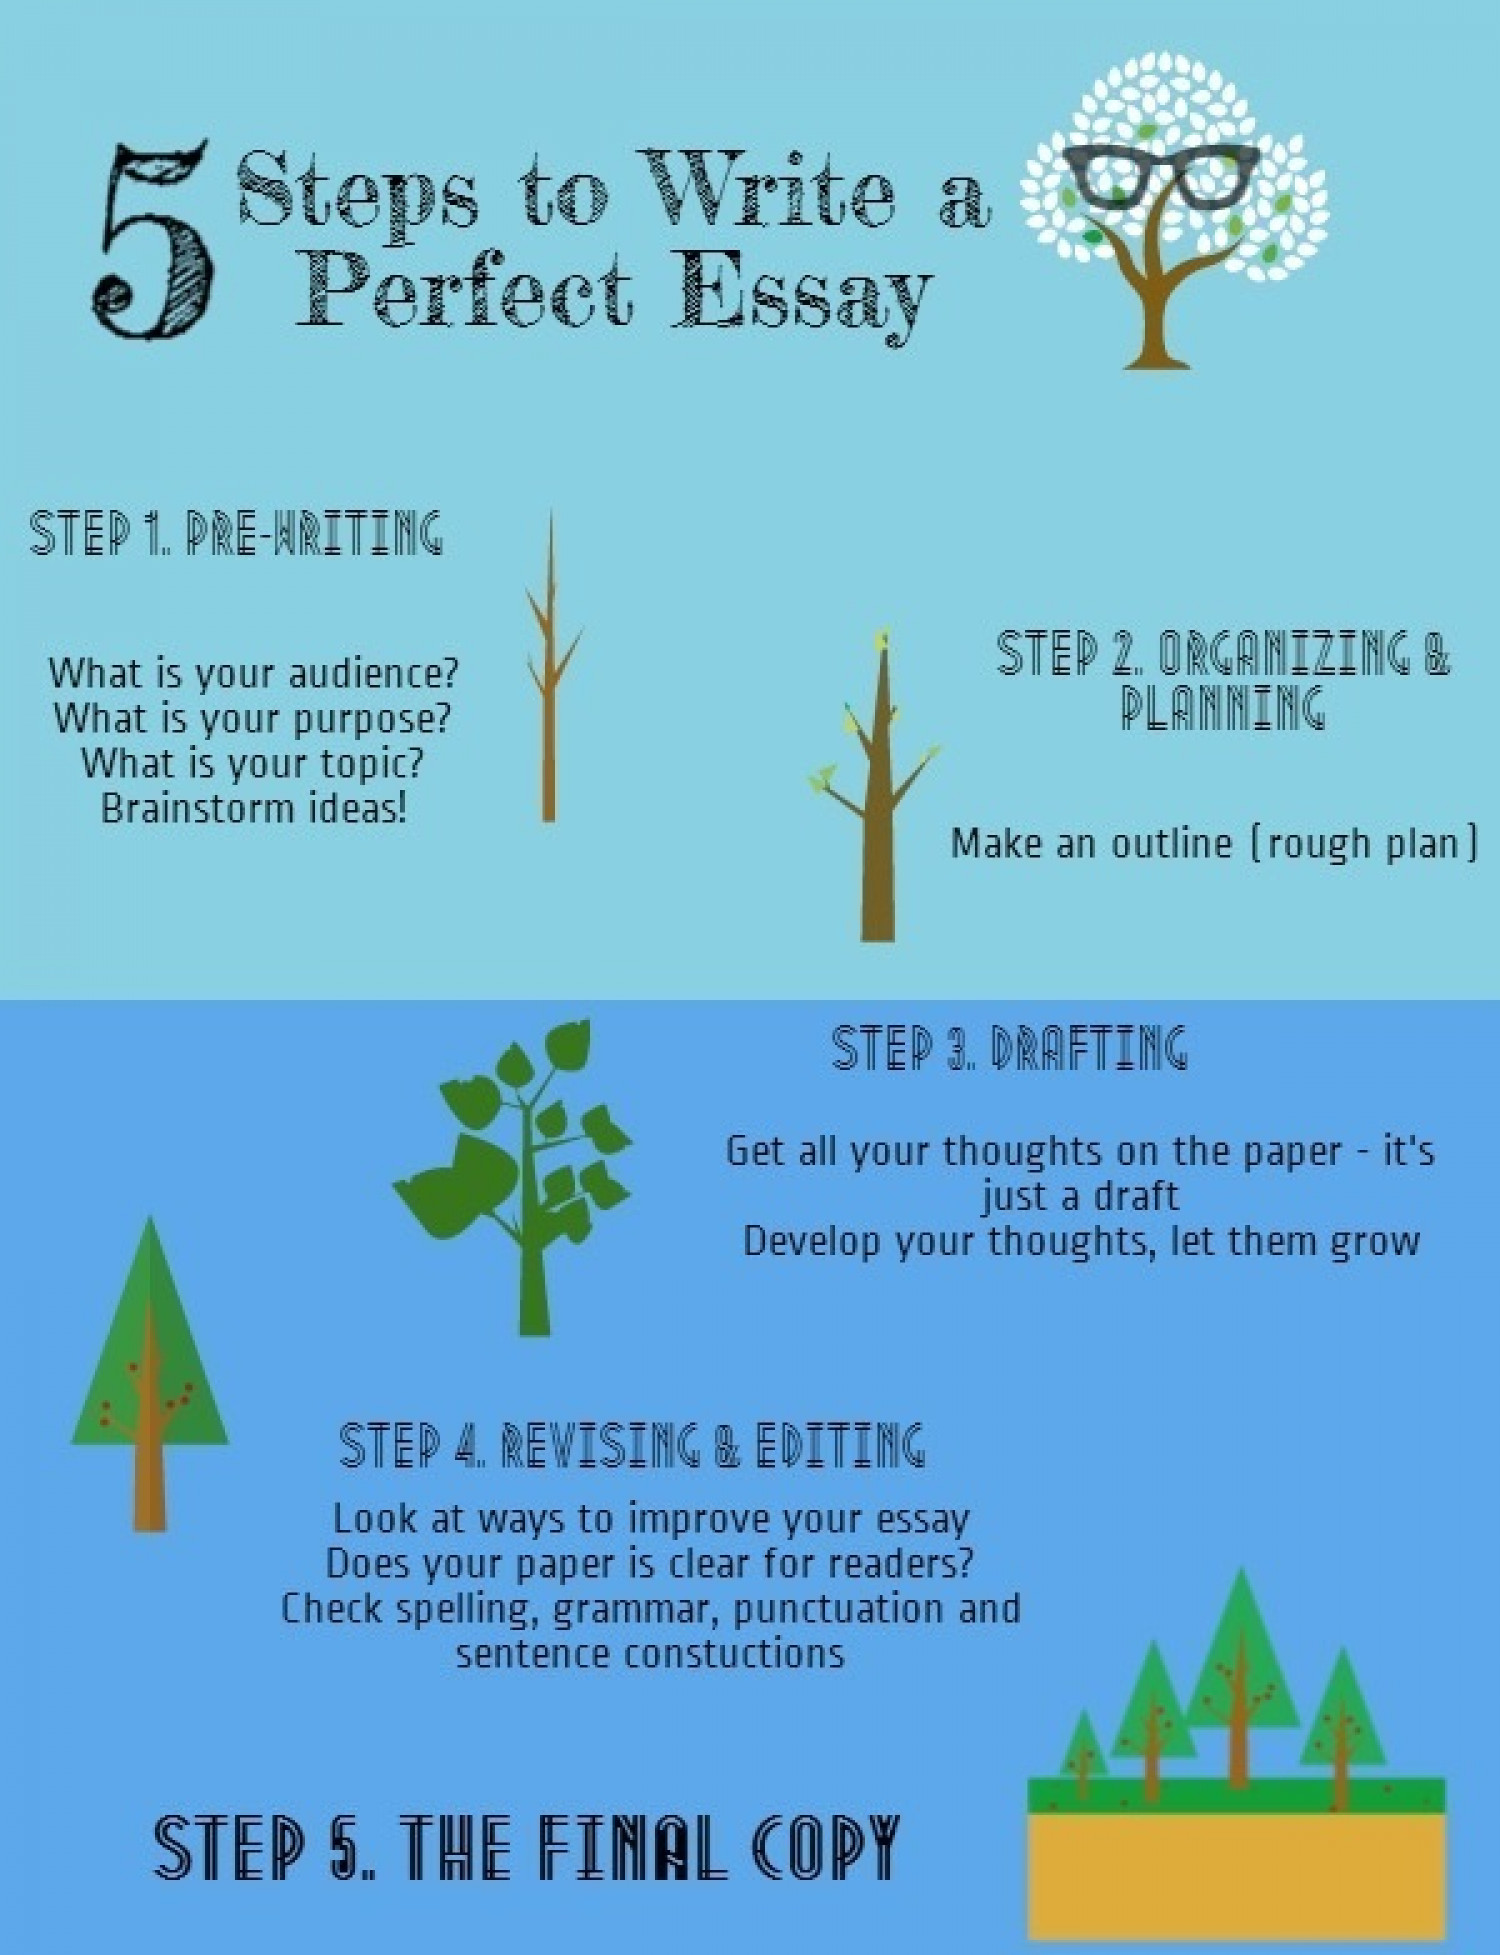 5 Steps To Write A Perfect Essaygraphic